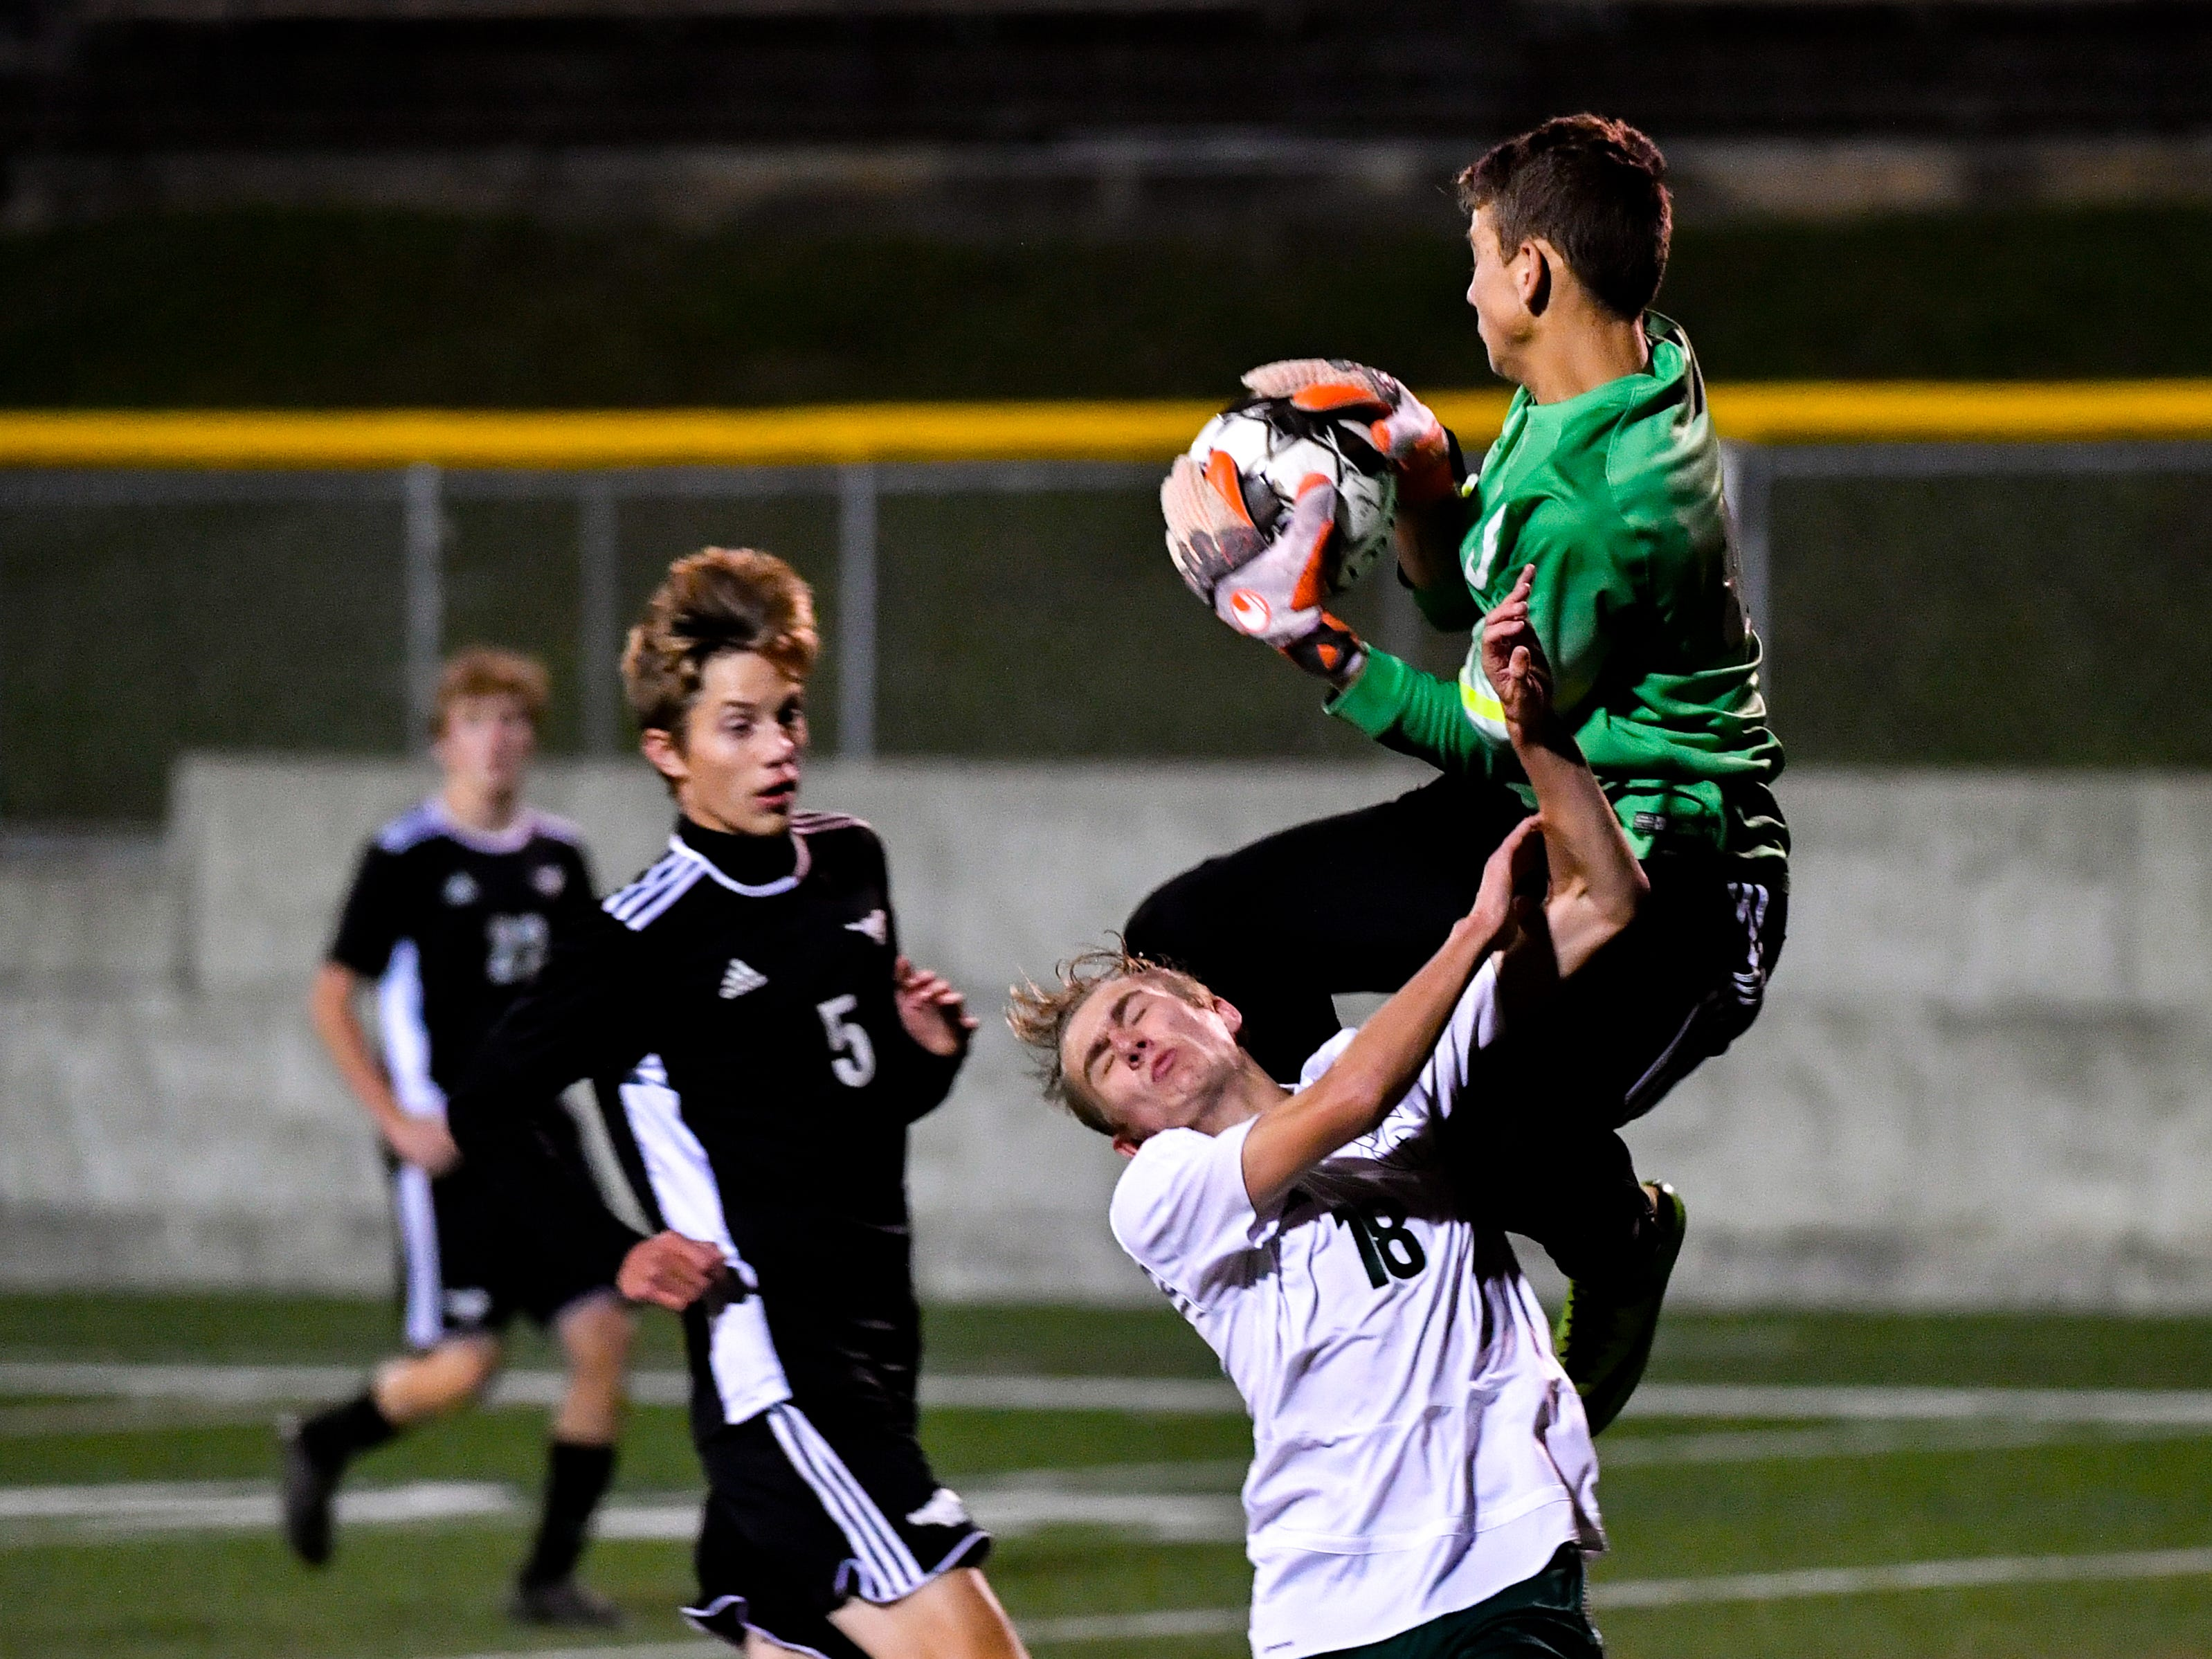 Joe Stevenson (49) of South Western jumps over an attacker to secure the ball during the boys soccer game between South Western and York Catholic, October 16, 2018. The Mustangs beat the Irish 2-1.